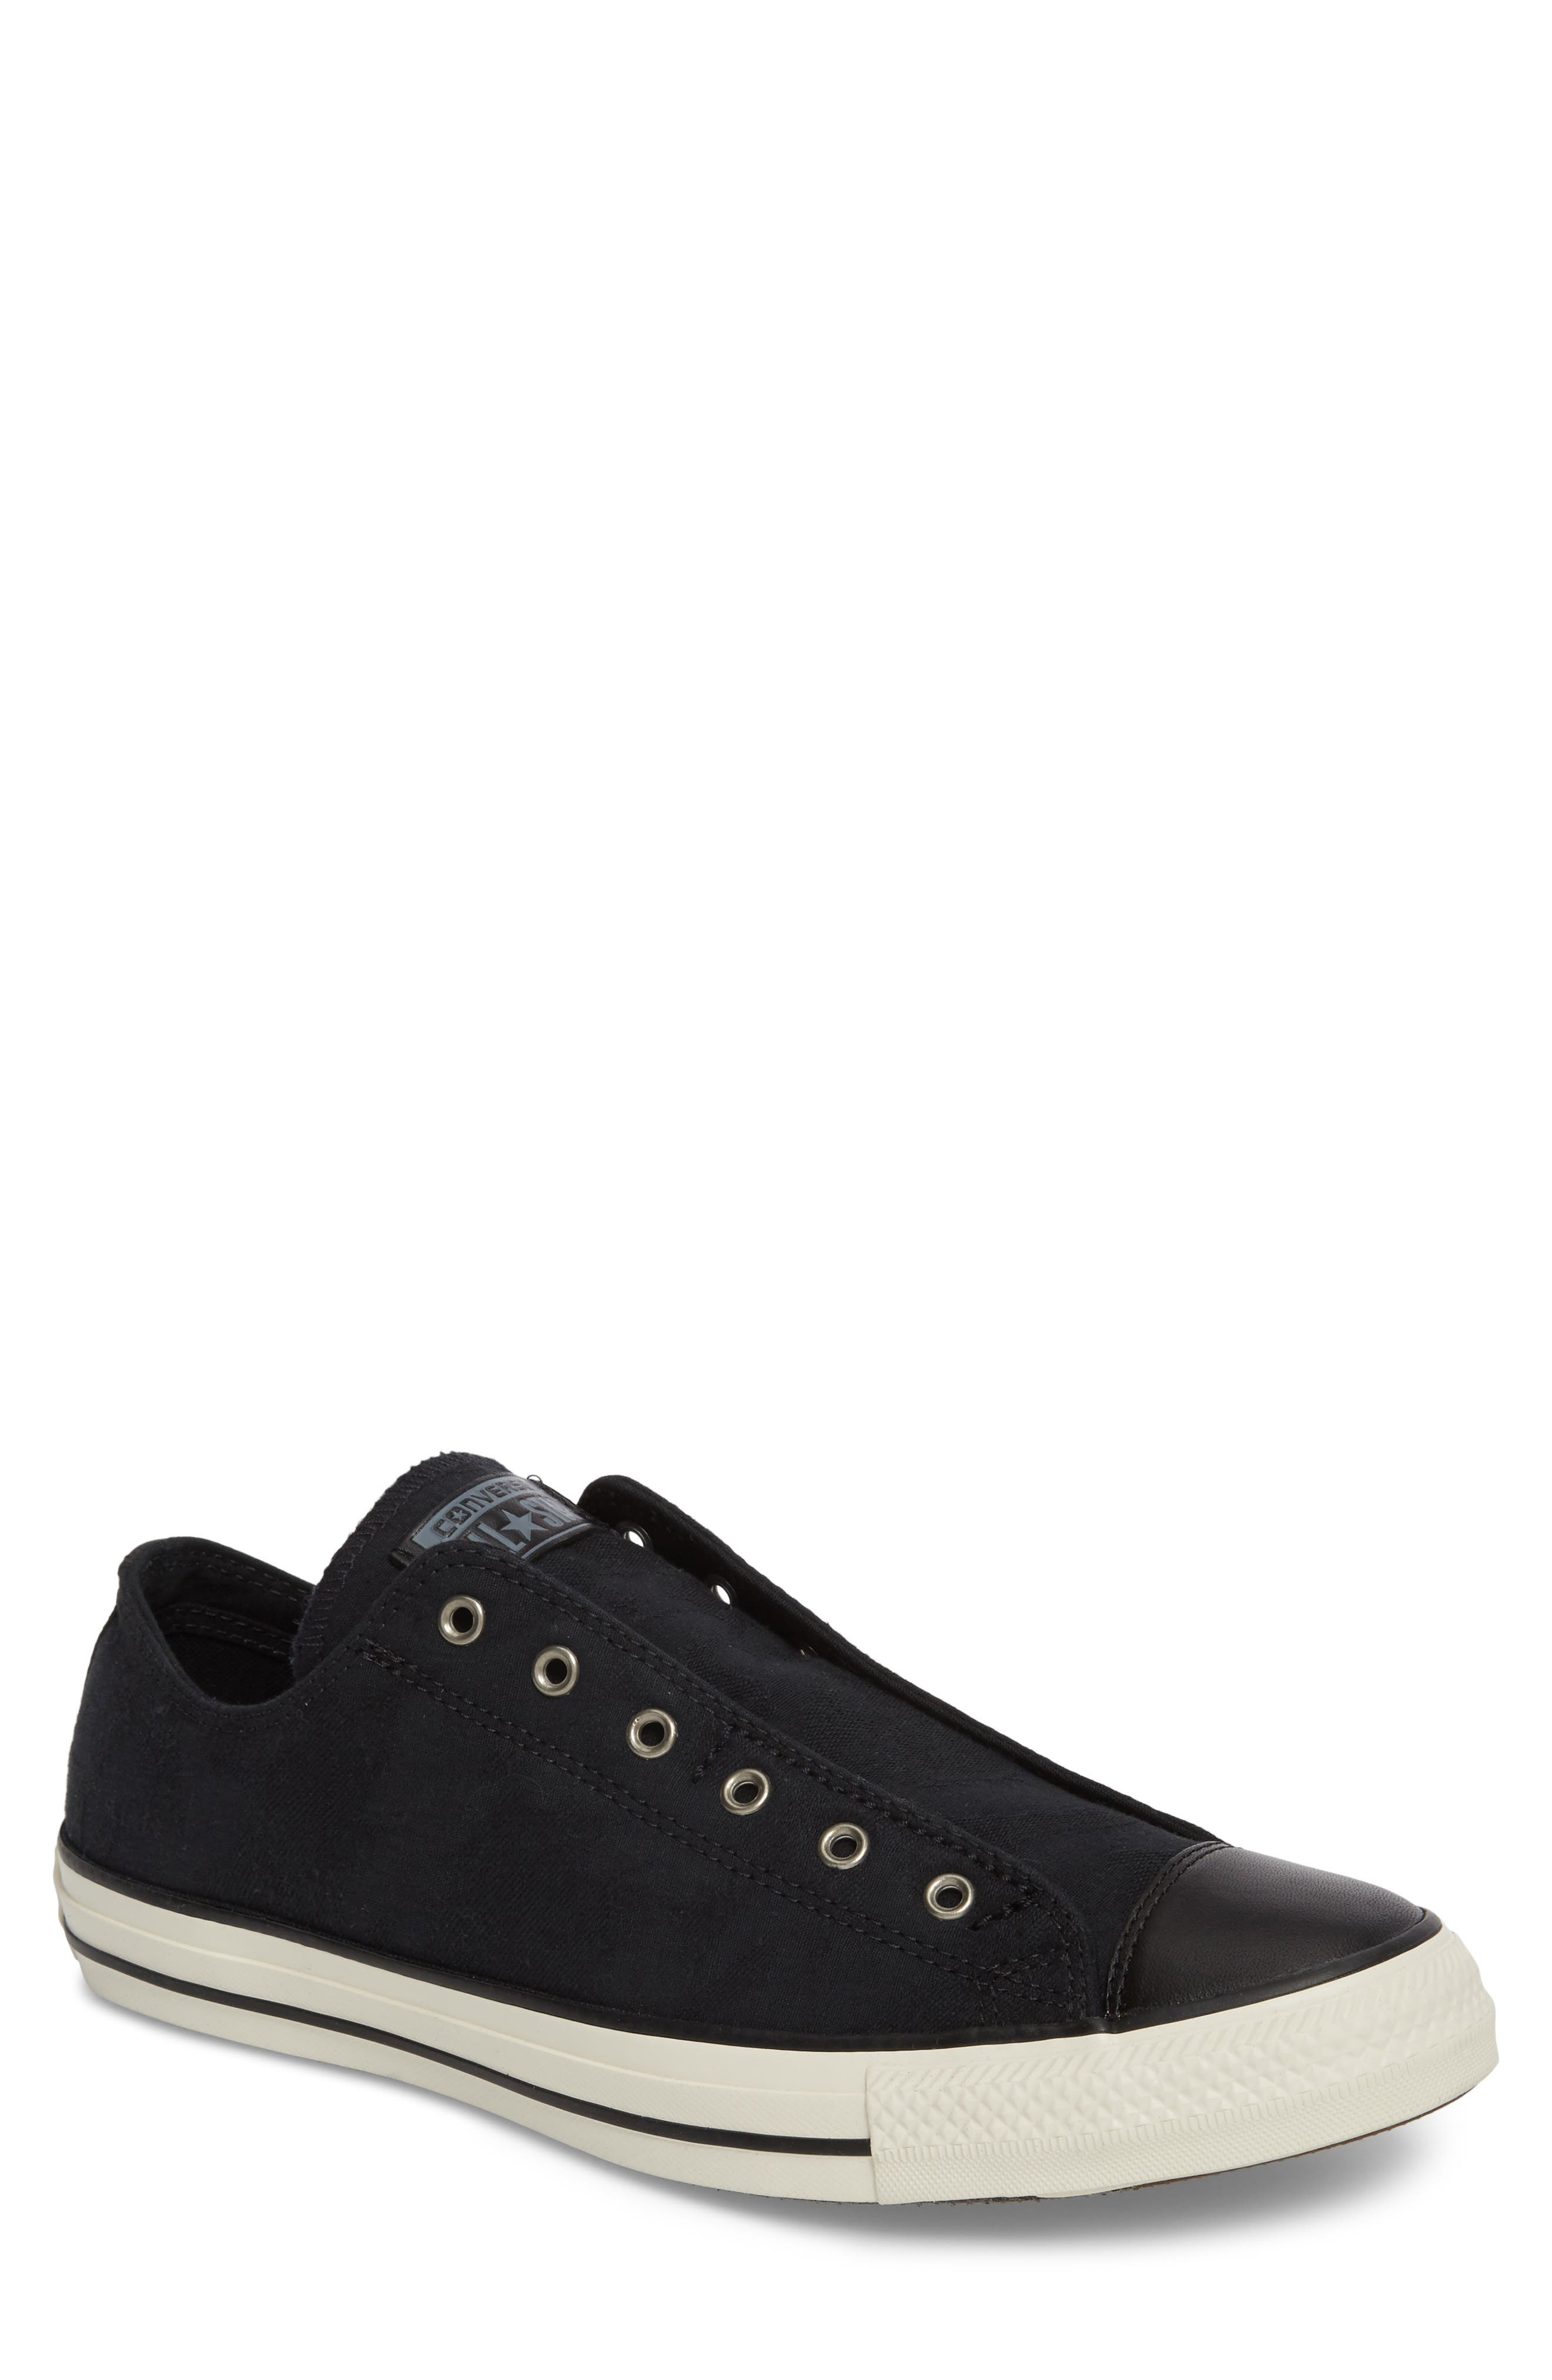 Chuck Taylor<sup>®</sup> All Star<sup>®</sup> Laceless Low Top Sneaker,                             Main thumbnail 1, color,                             Black